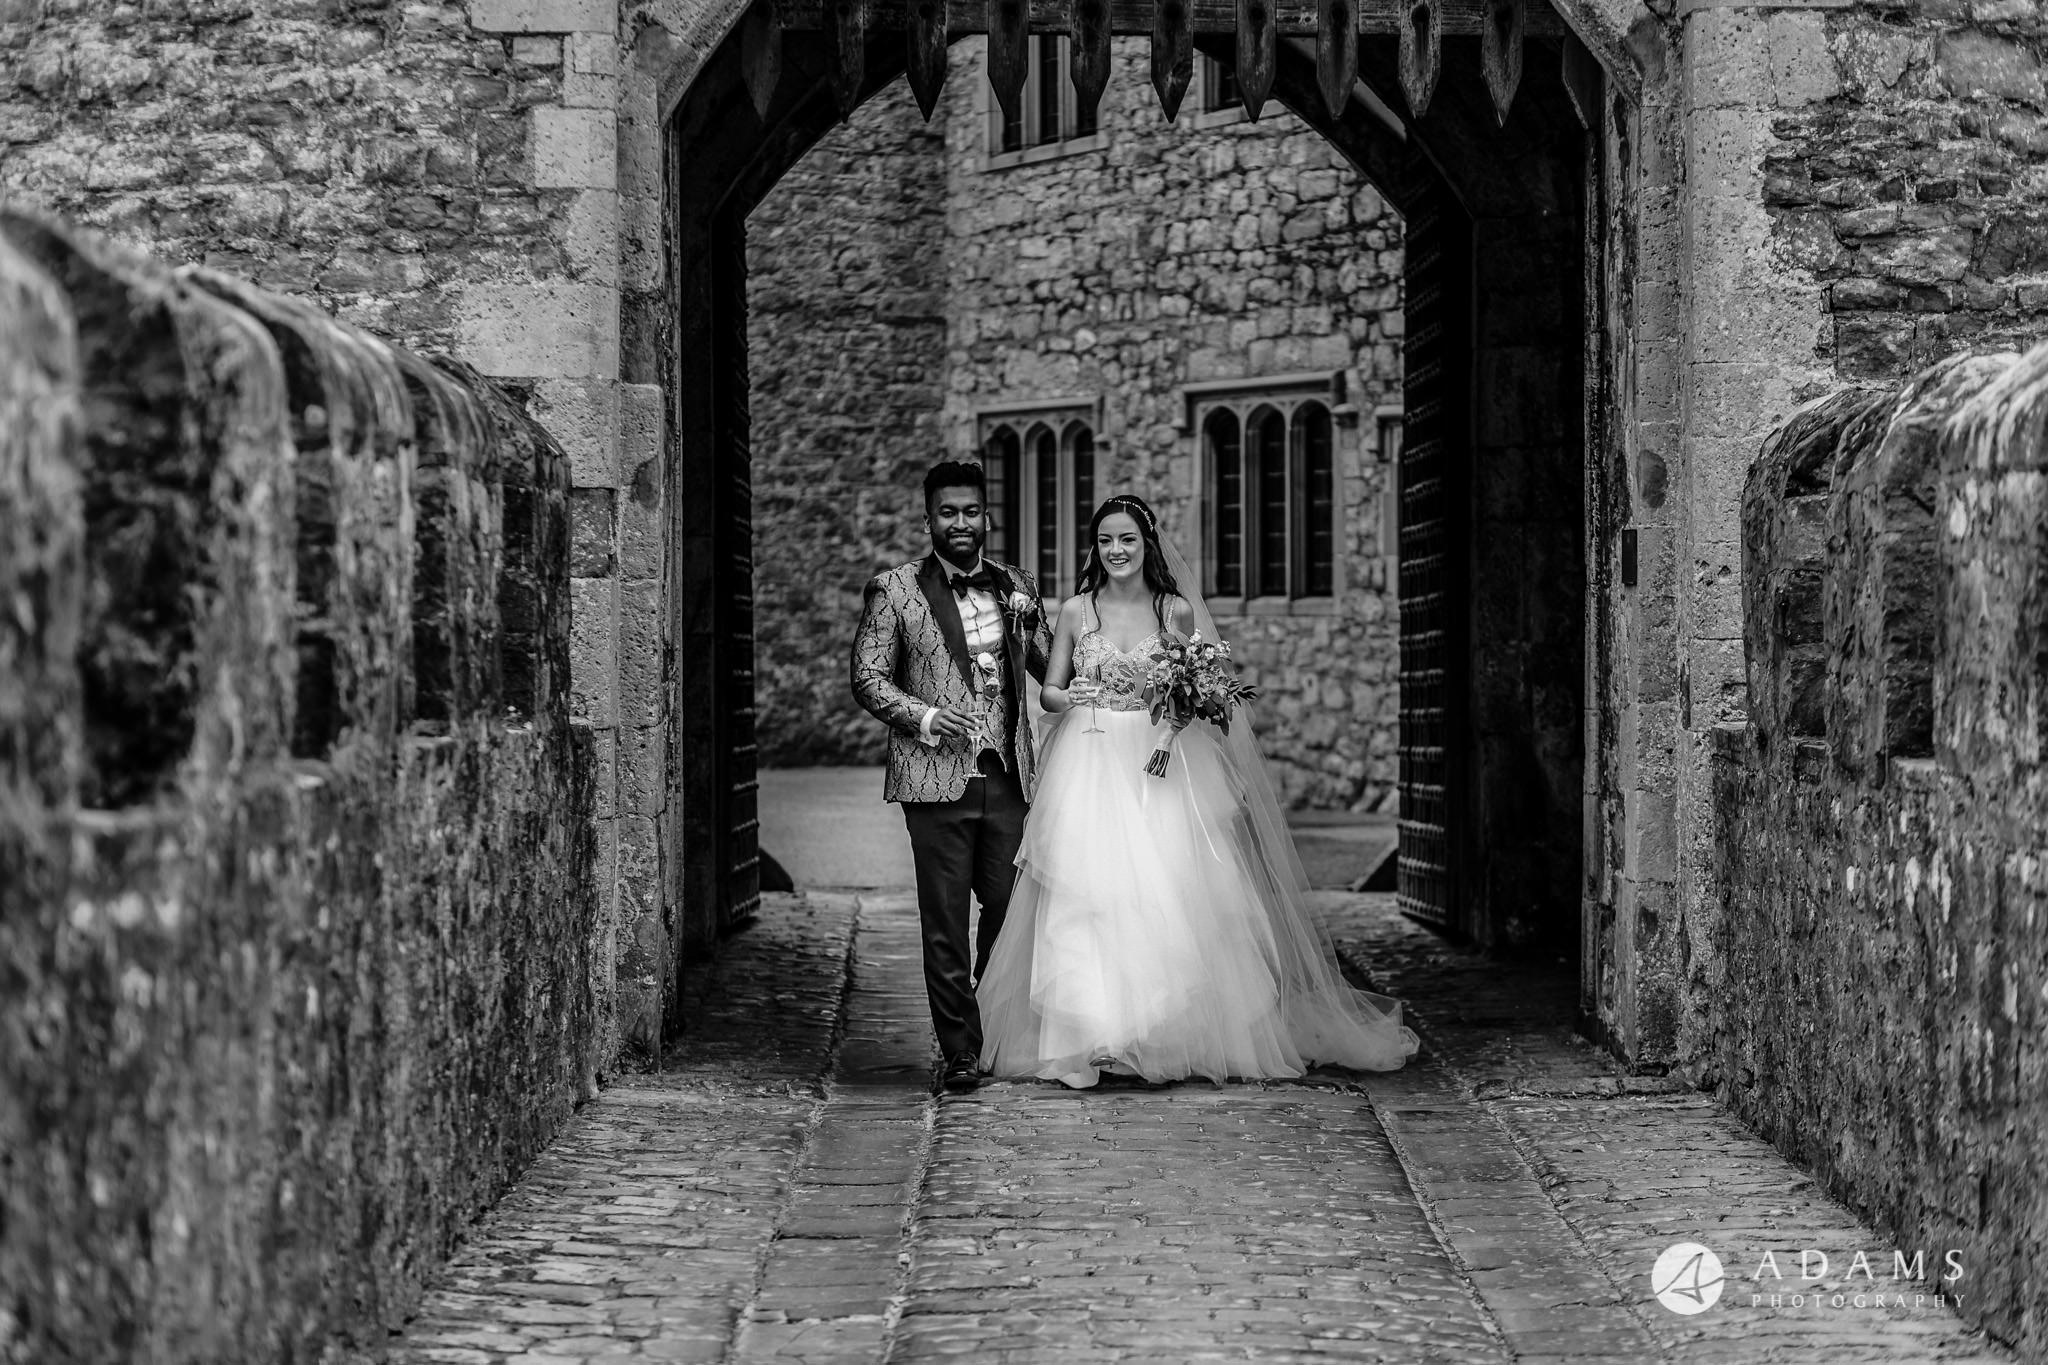 st donats castle wedding the married couple walk in from of the castle entrance gate